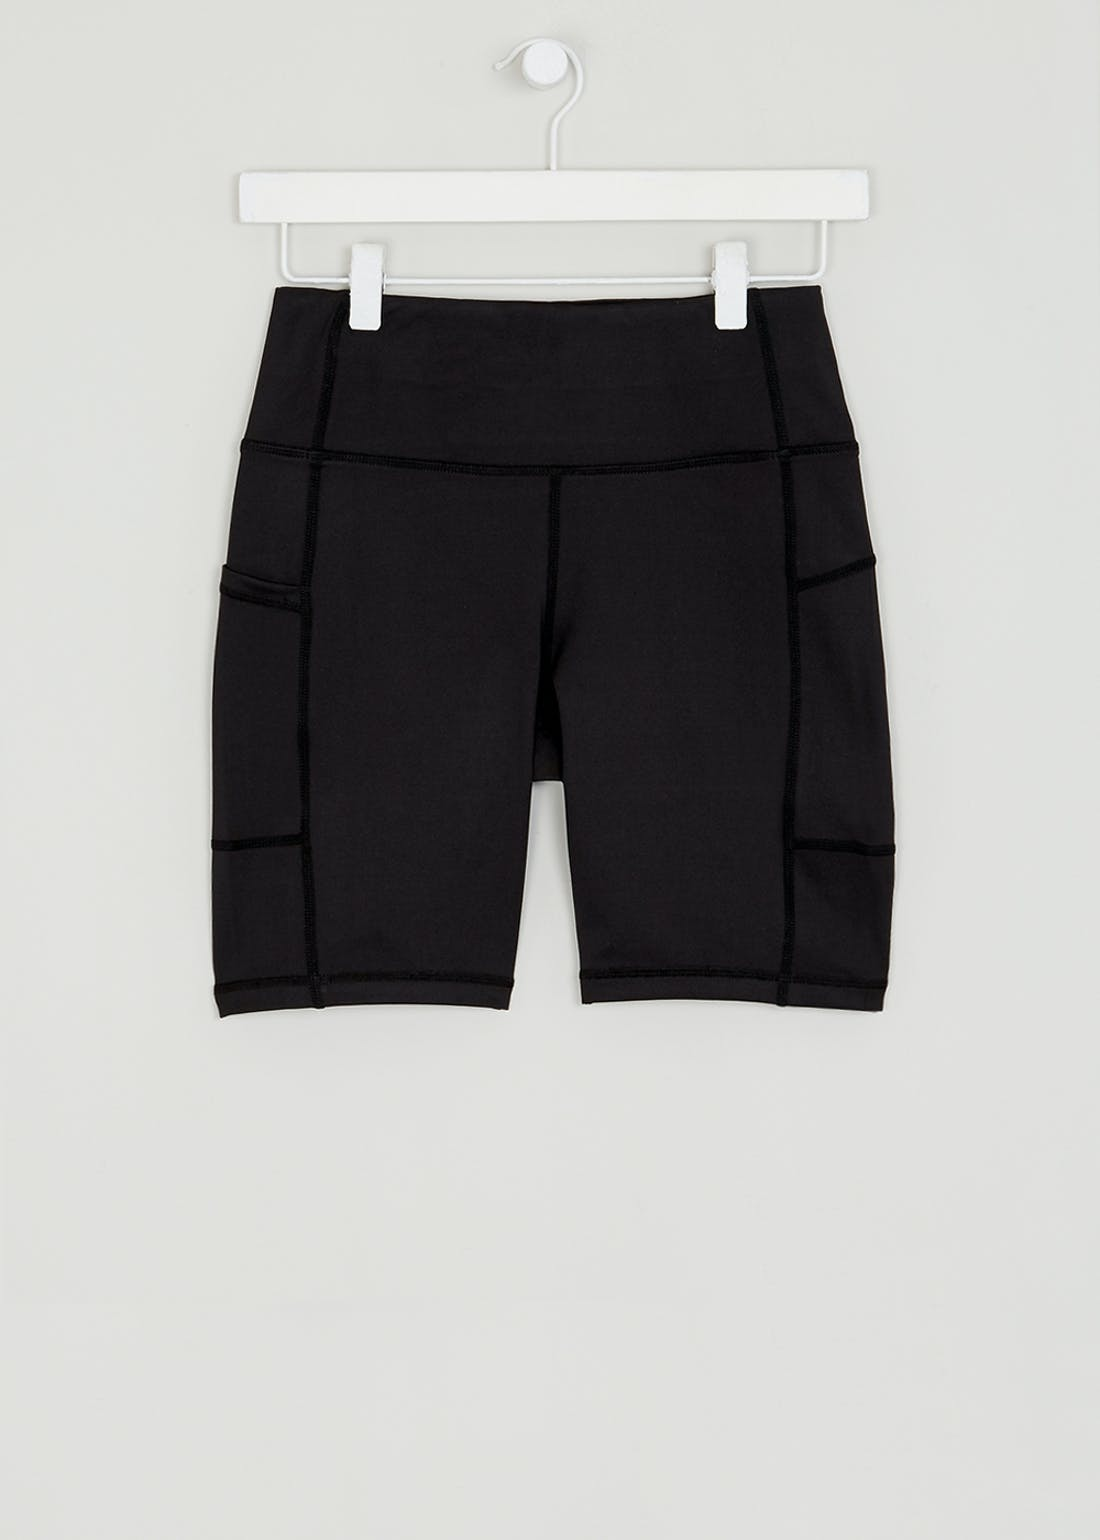 Souluxe Black Cycling Shorts